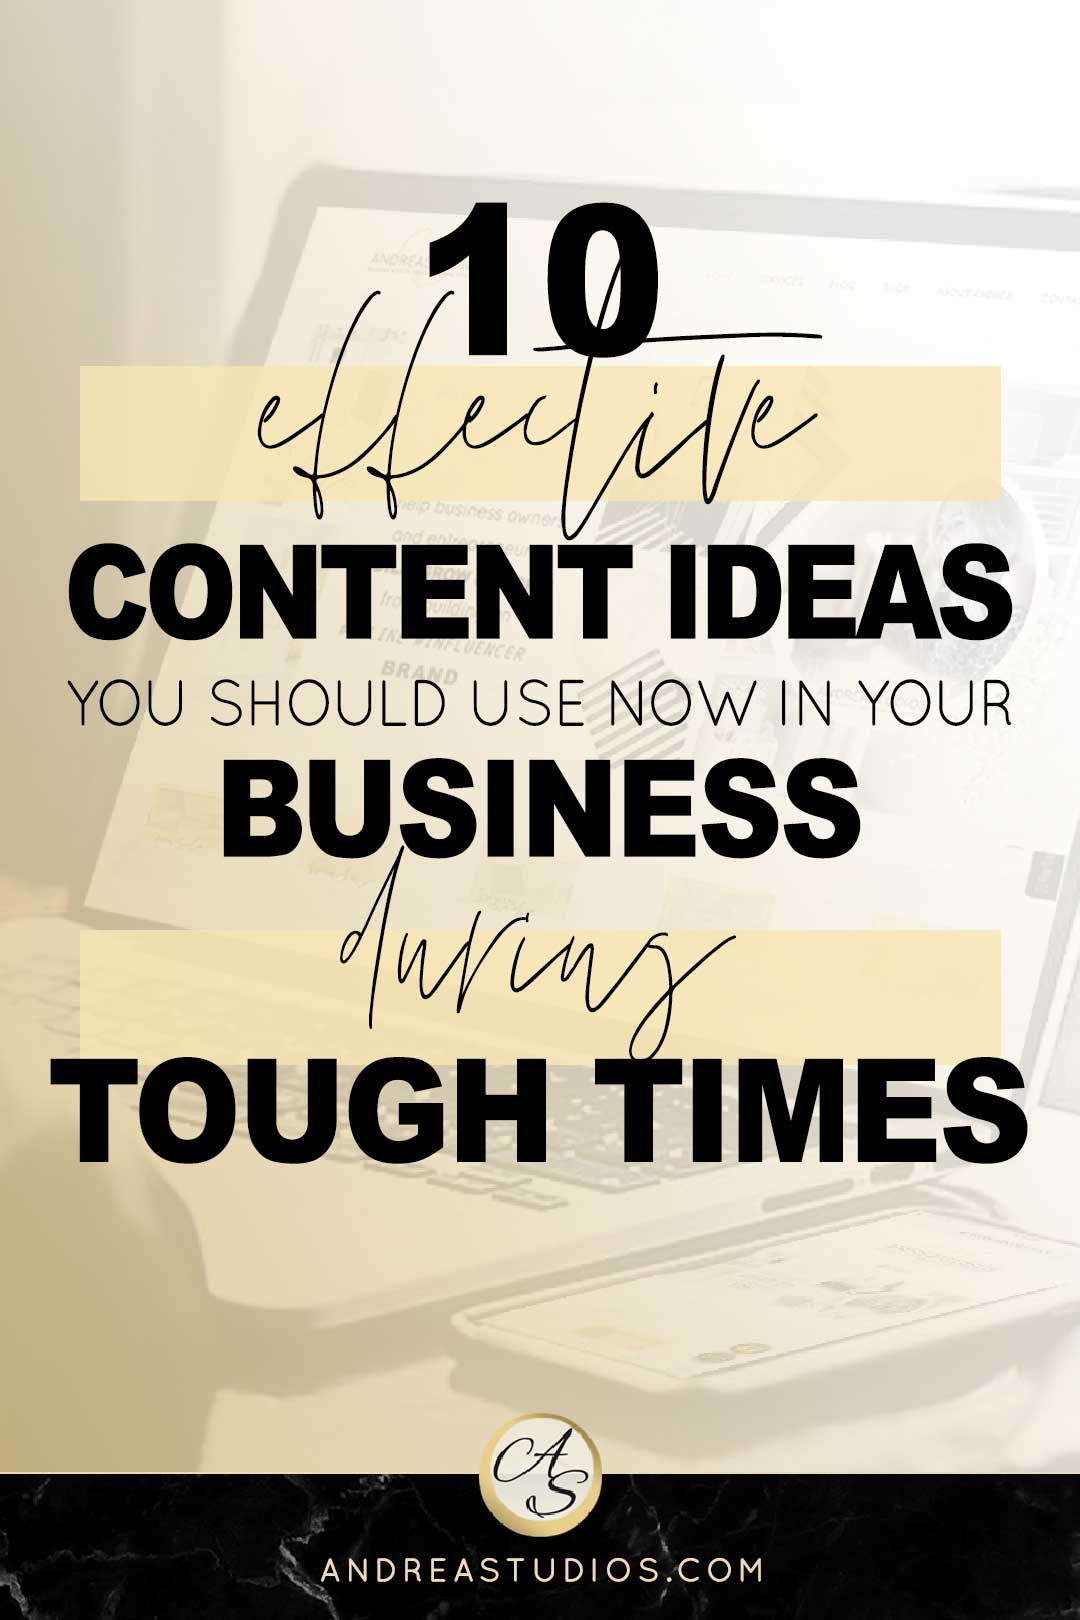 fective content ideas you should use now in your business during TOUGH TIMES